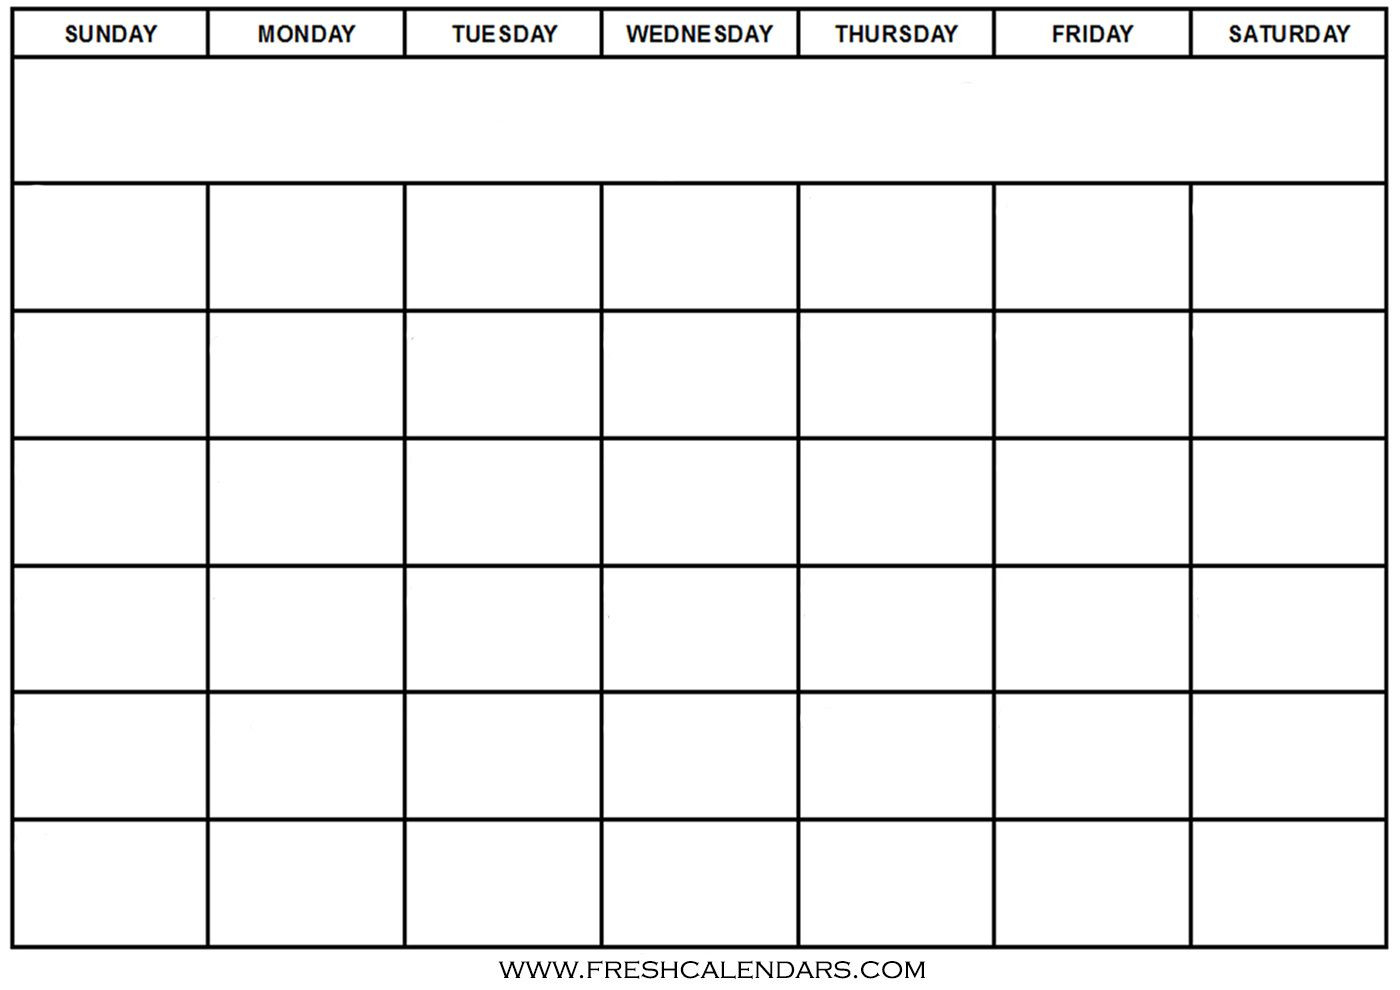 30 Print Free Calendar Template | Andaluzseattle Template with Blank Sunday Through Saturday Calendar